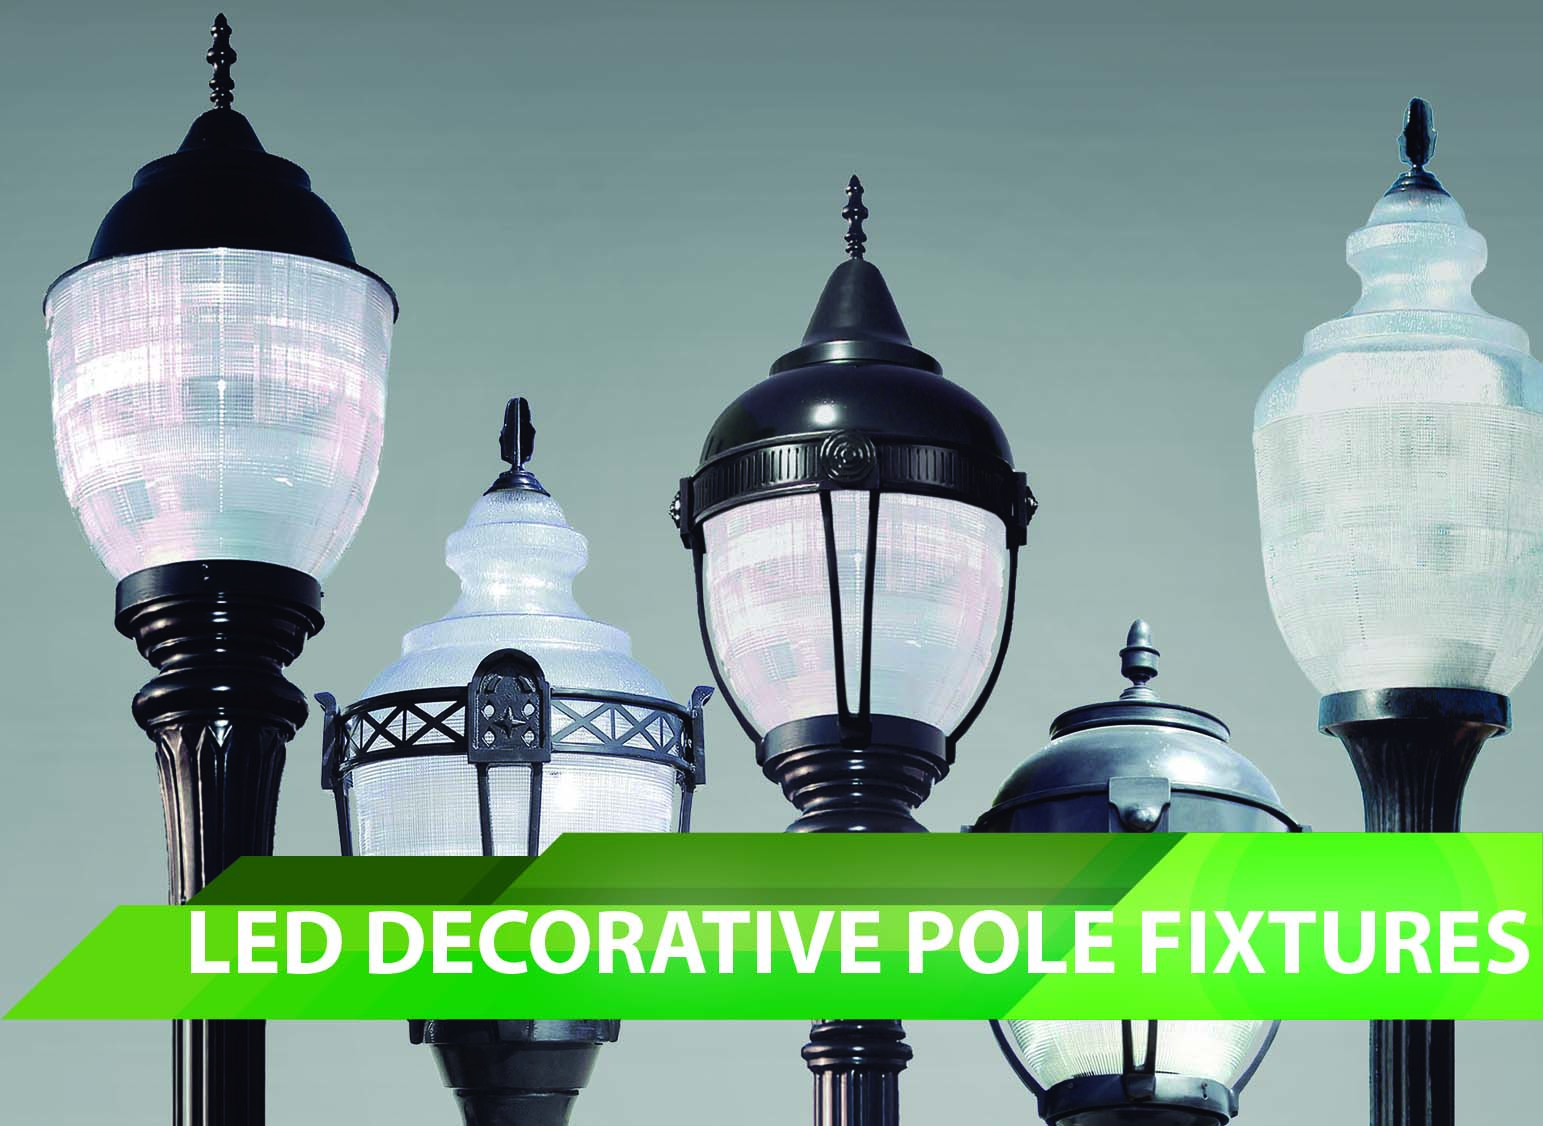 LED Decorative Pole Fixtures